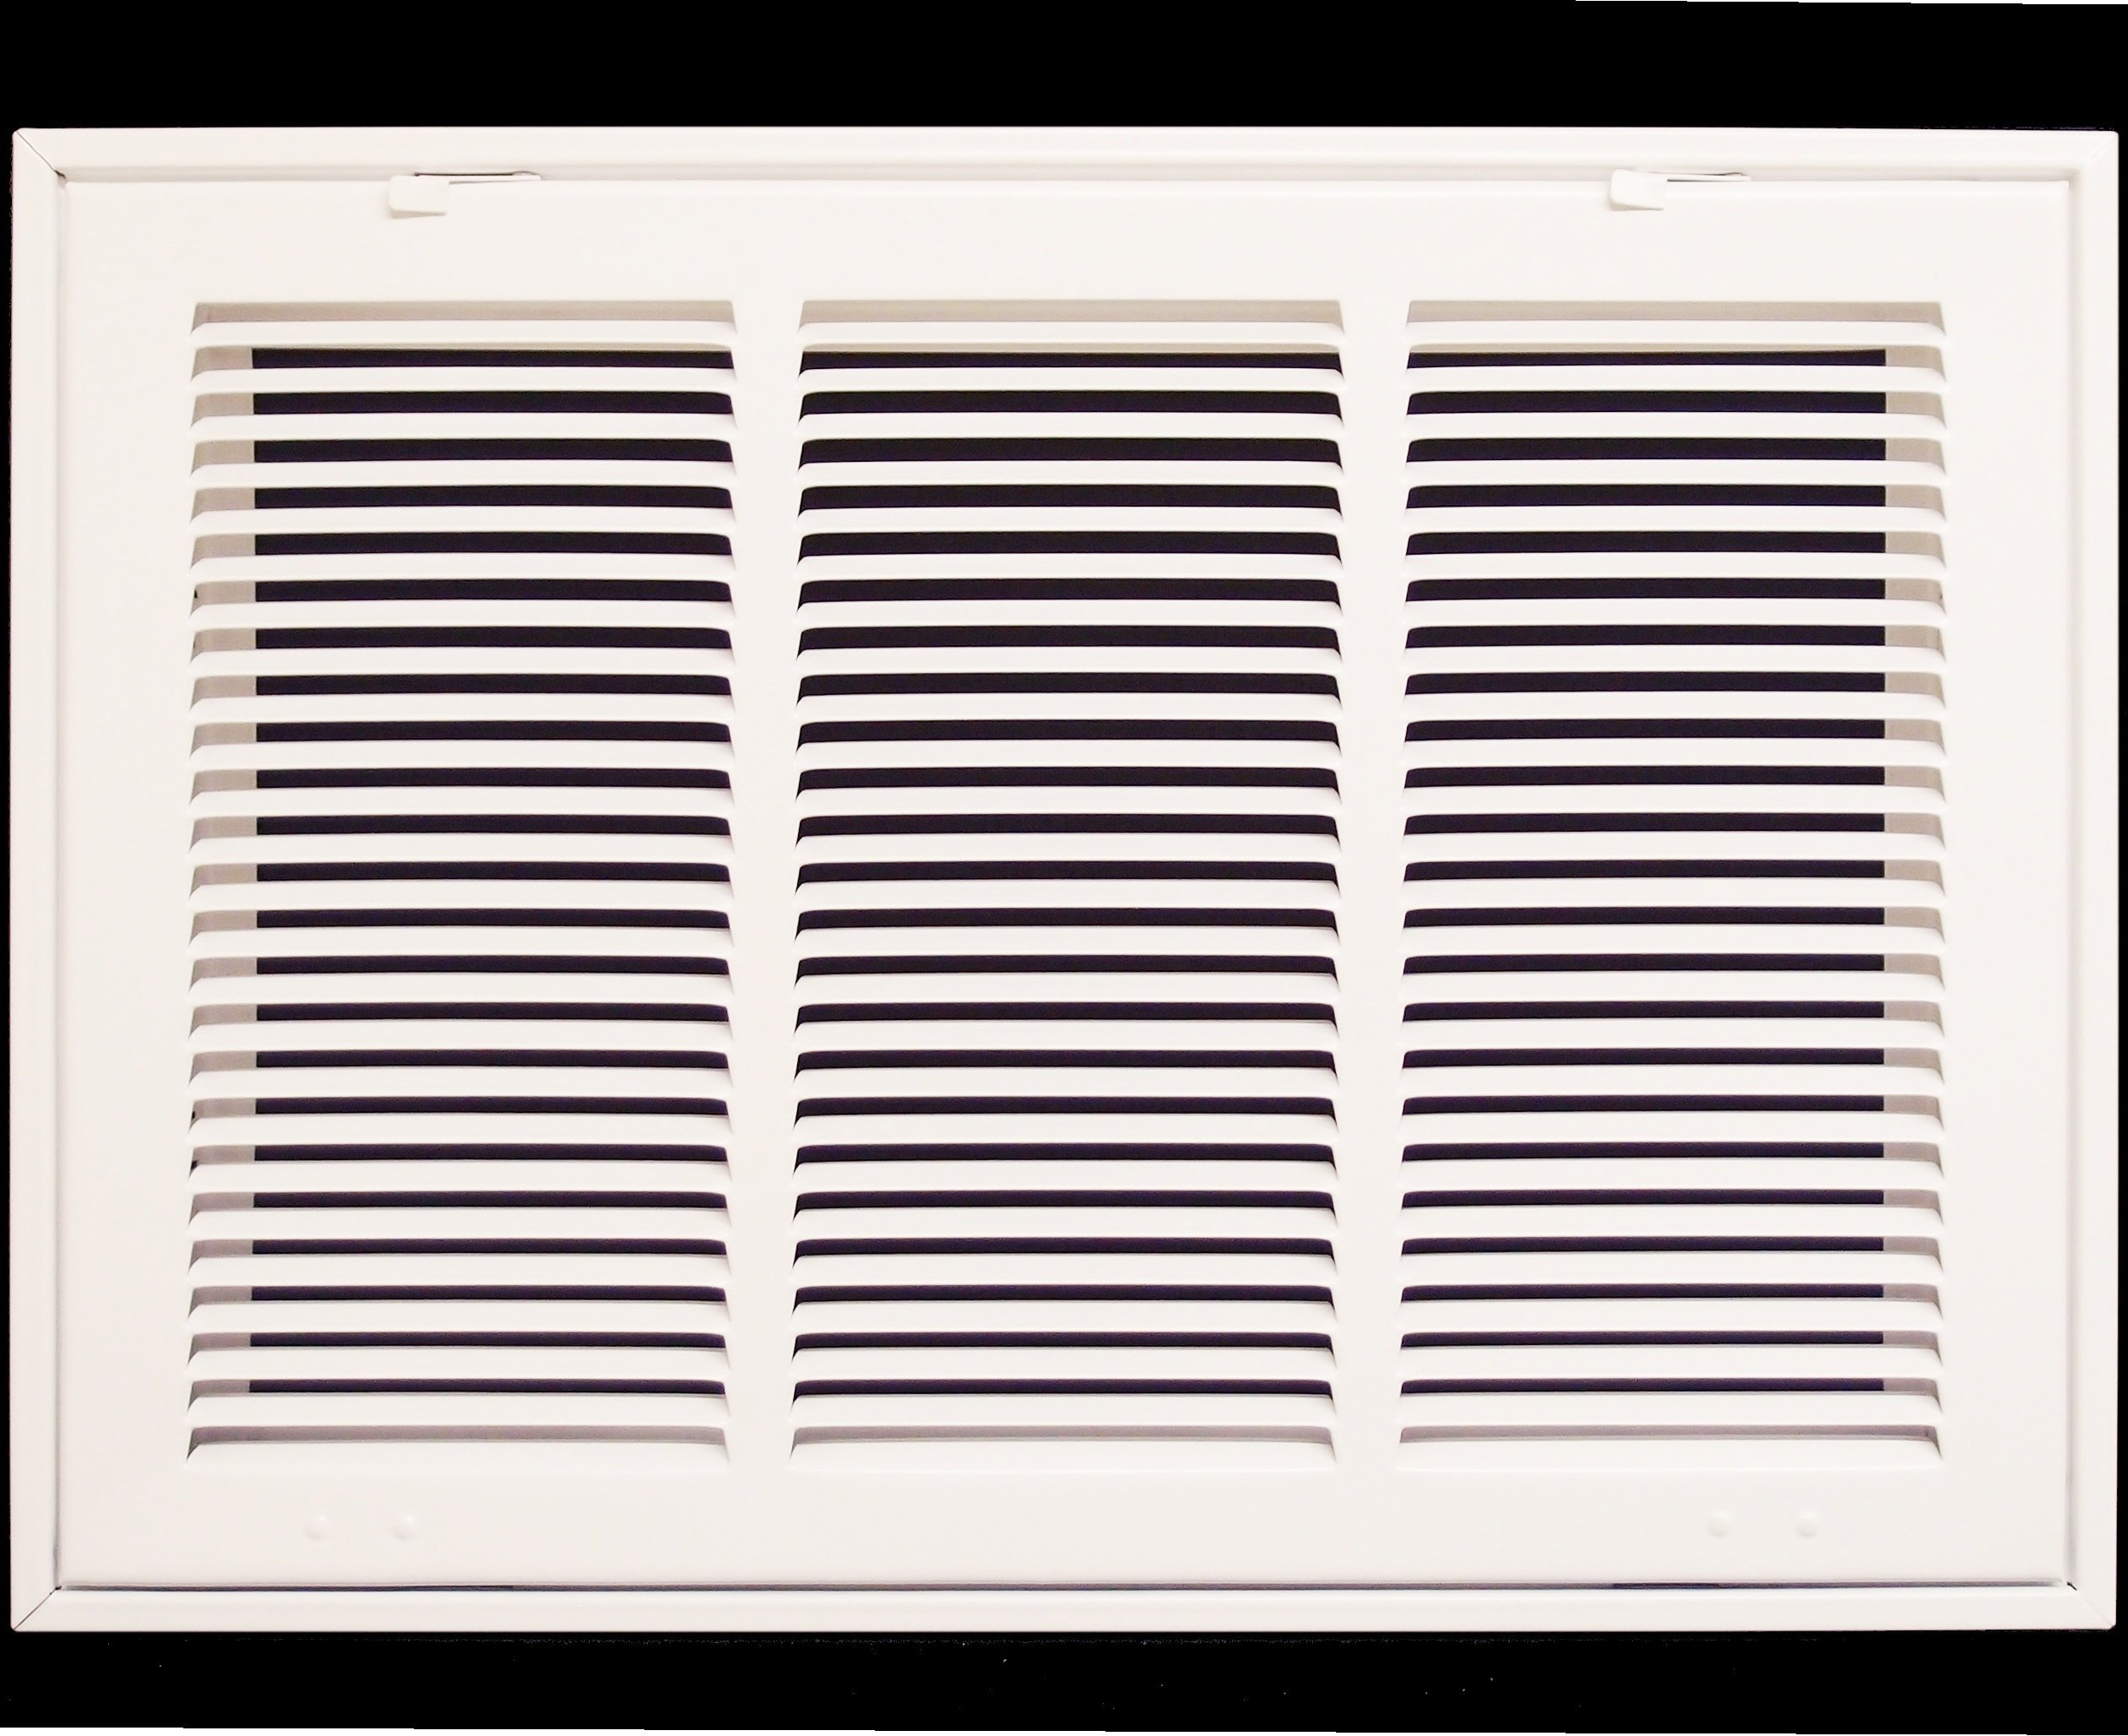 20'' X 12 Steel Return Air Filter Grille for 1'' Filter - Fixed Hinged - ceiling Recommended - HVAC DUCT COVER - Flat Stamped Face - White [Outer Dimensions: 22.5''w X 14.5''h]